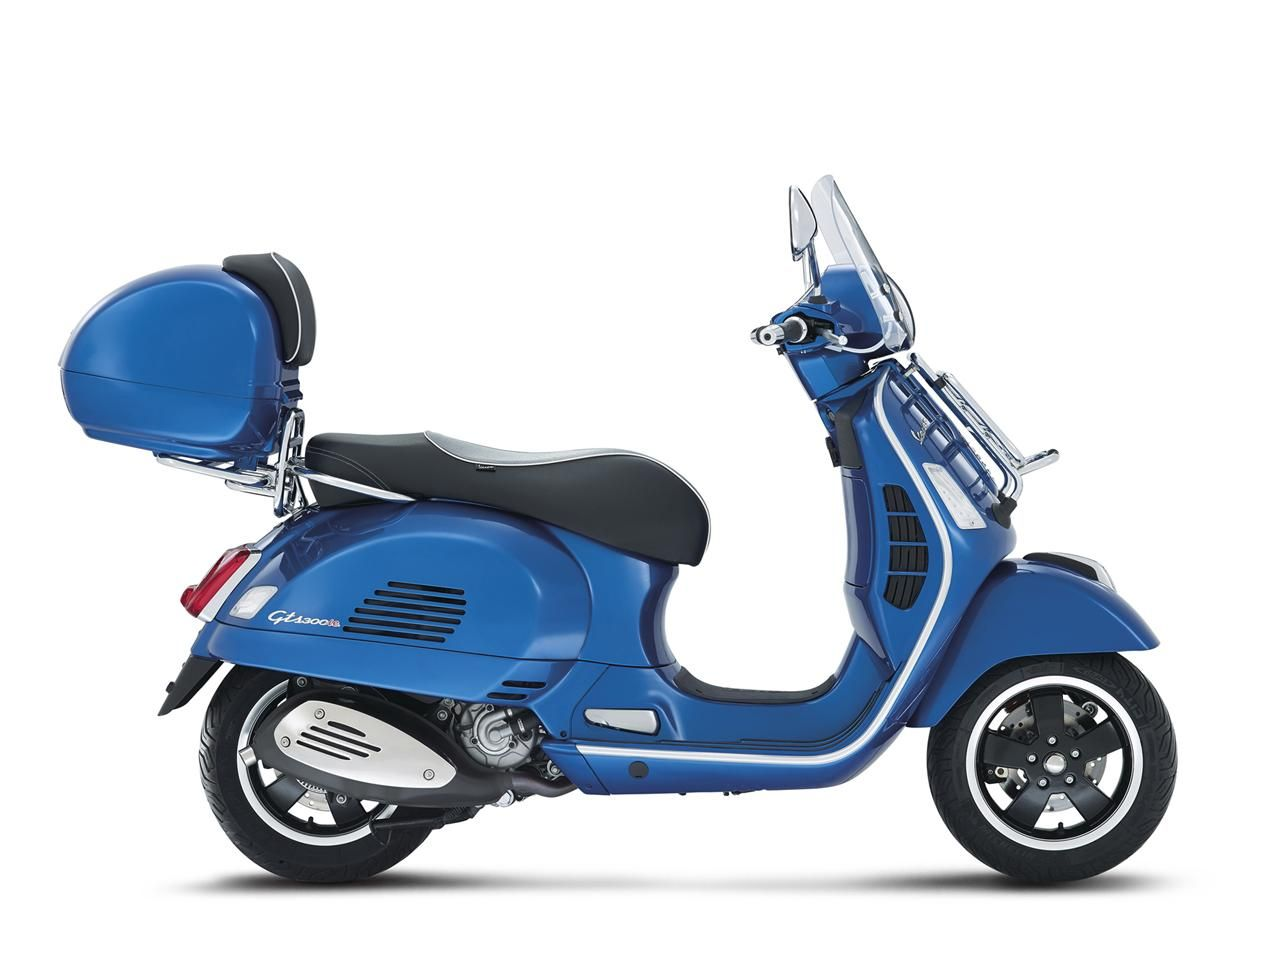 2015 vespa gts 300 range first look motorcycle usa - Fotos Vespa 300 Gts Ie Abs Super Abs